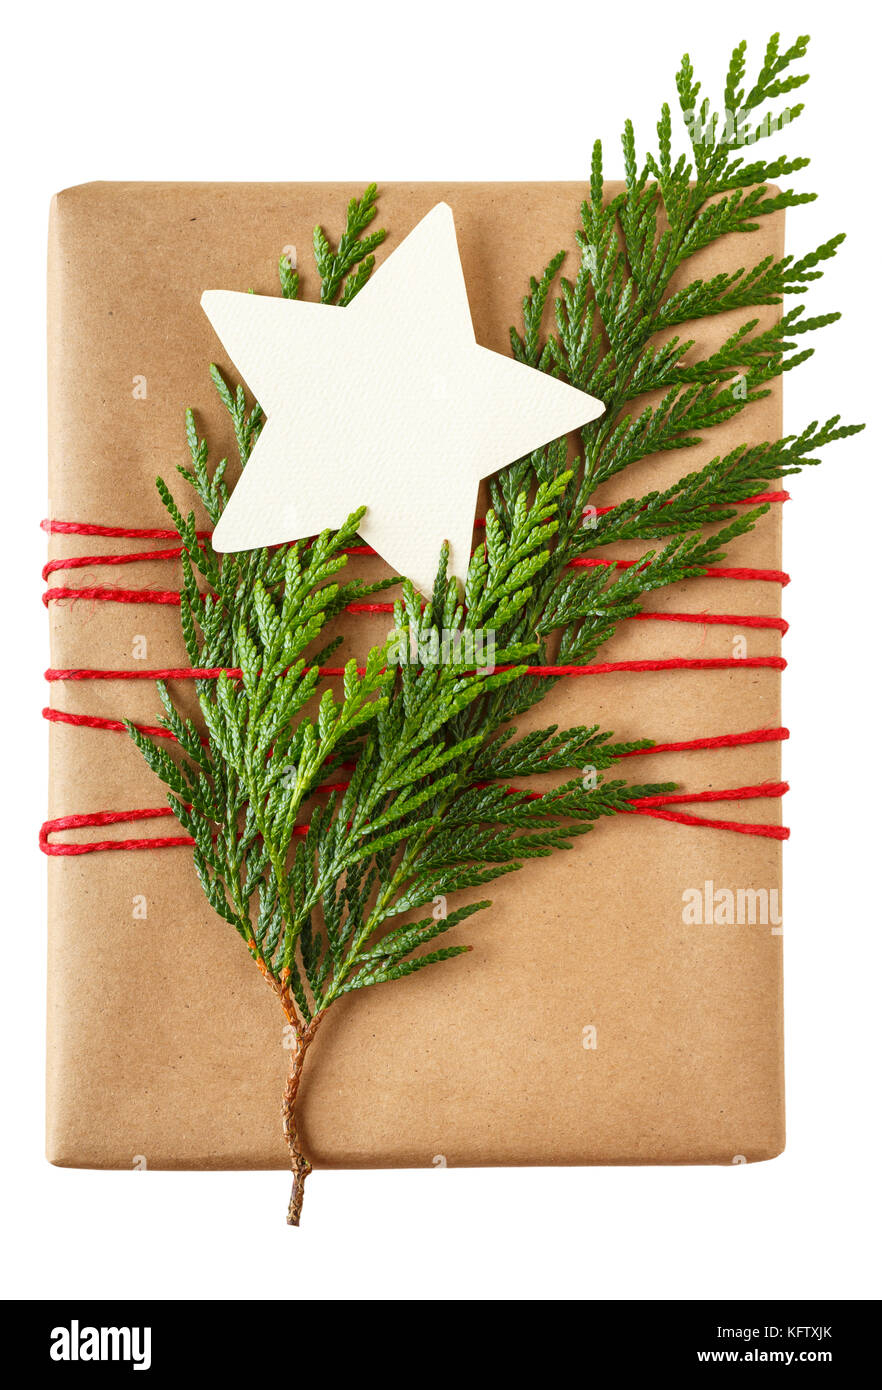 simple rustic christmas gift present with recycled wrapping paper